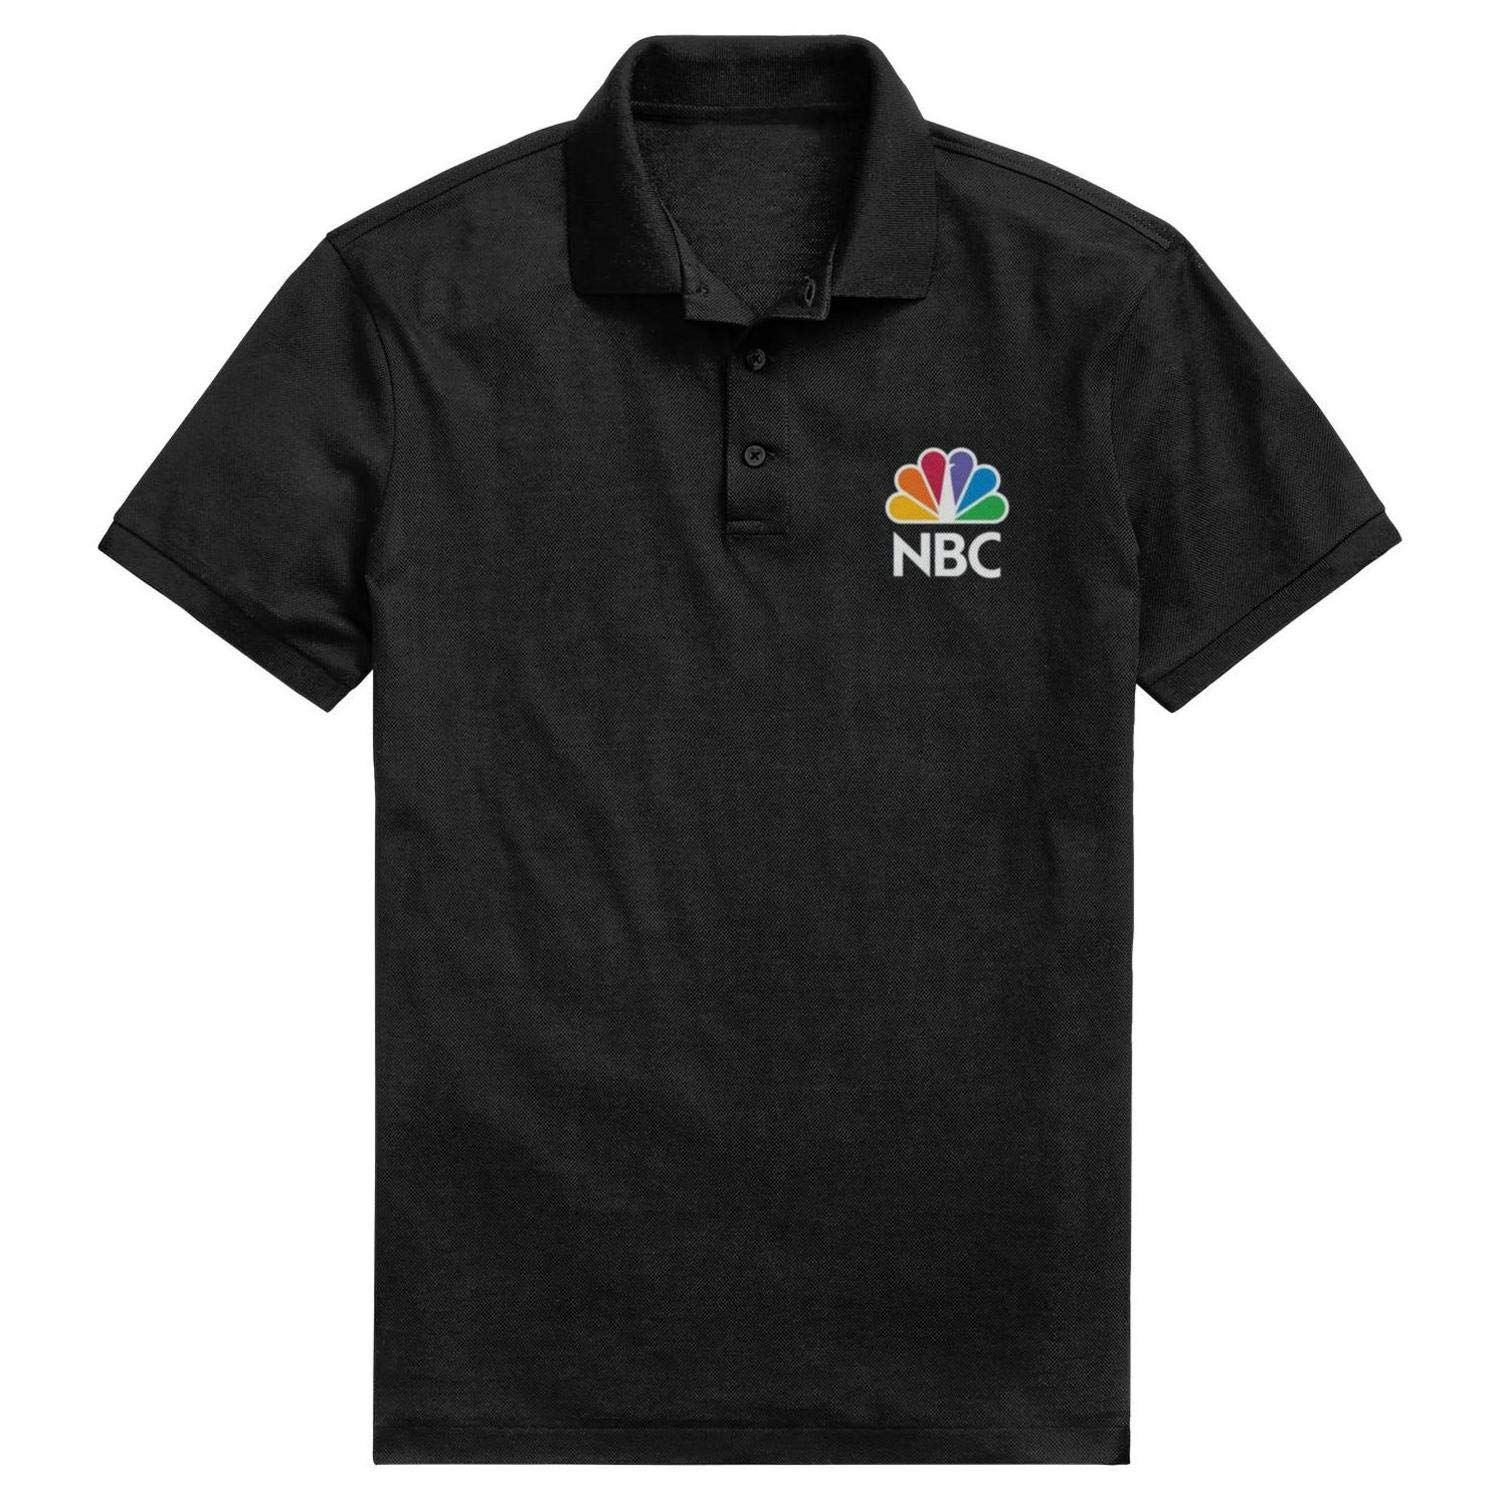 NBC/_Logo/_Triblend/_Royal Mens Classic Pique Polo T Shirt Fitness Adjustable Office Short-Sleeves